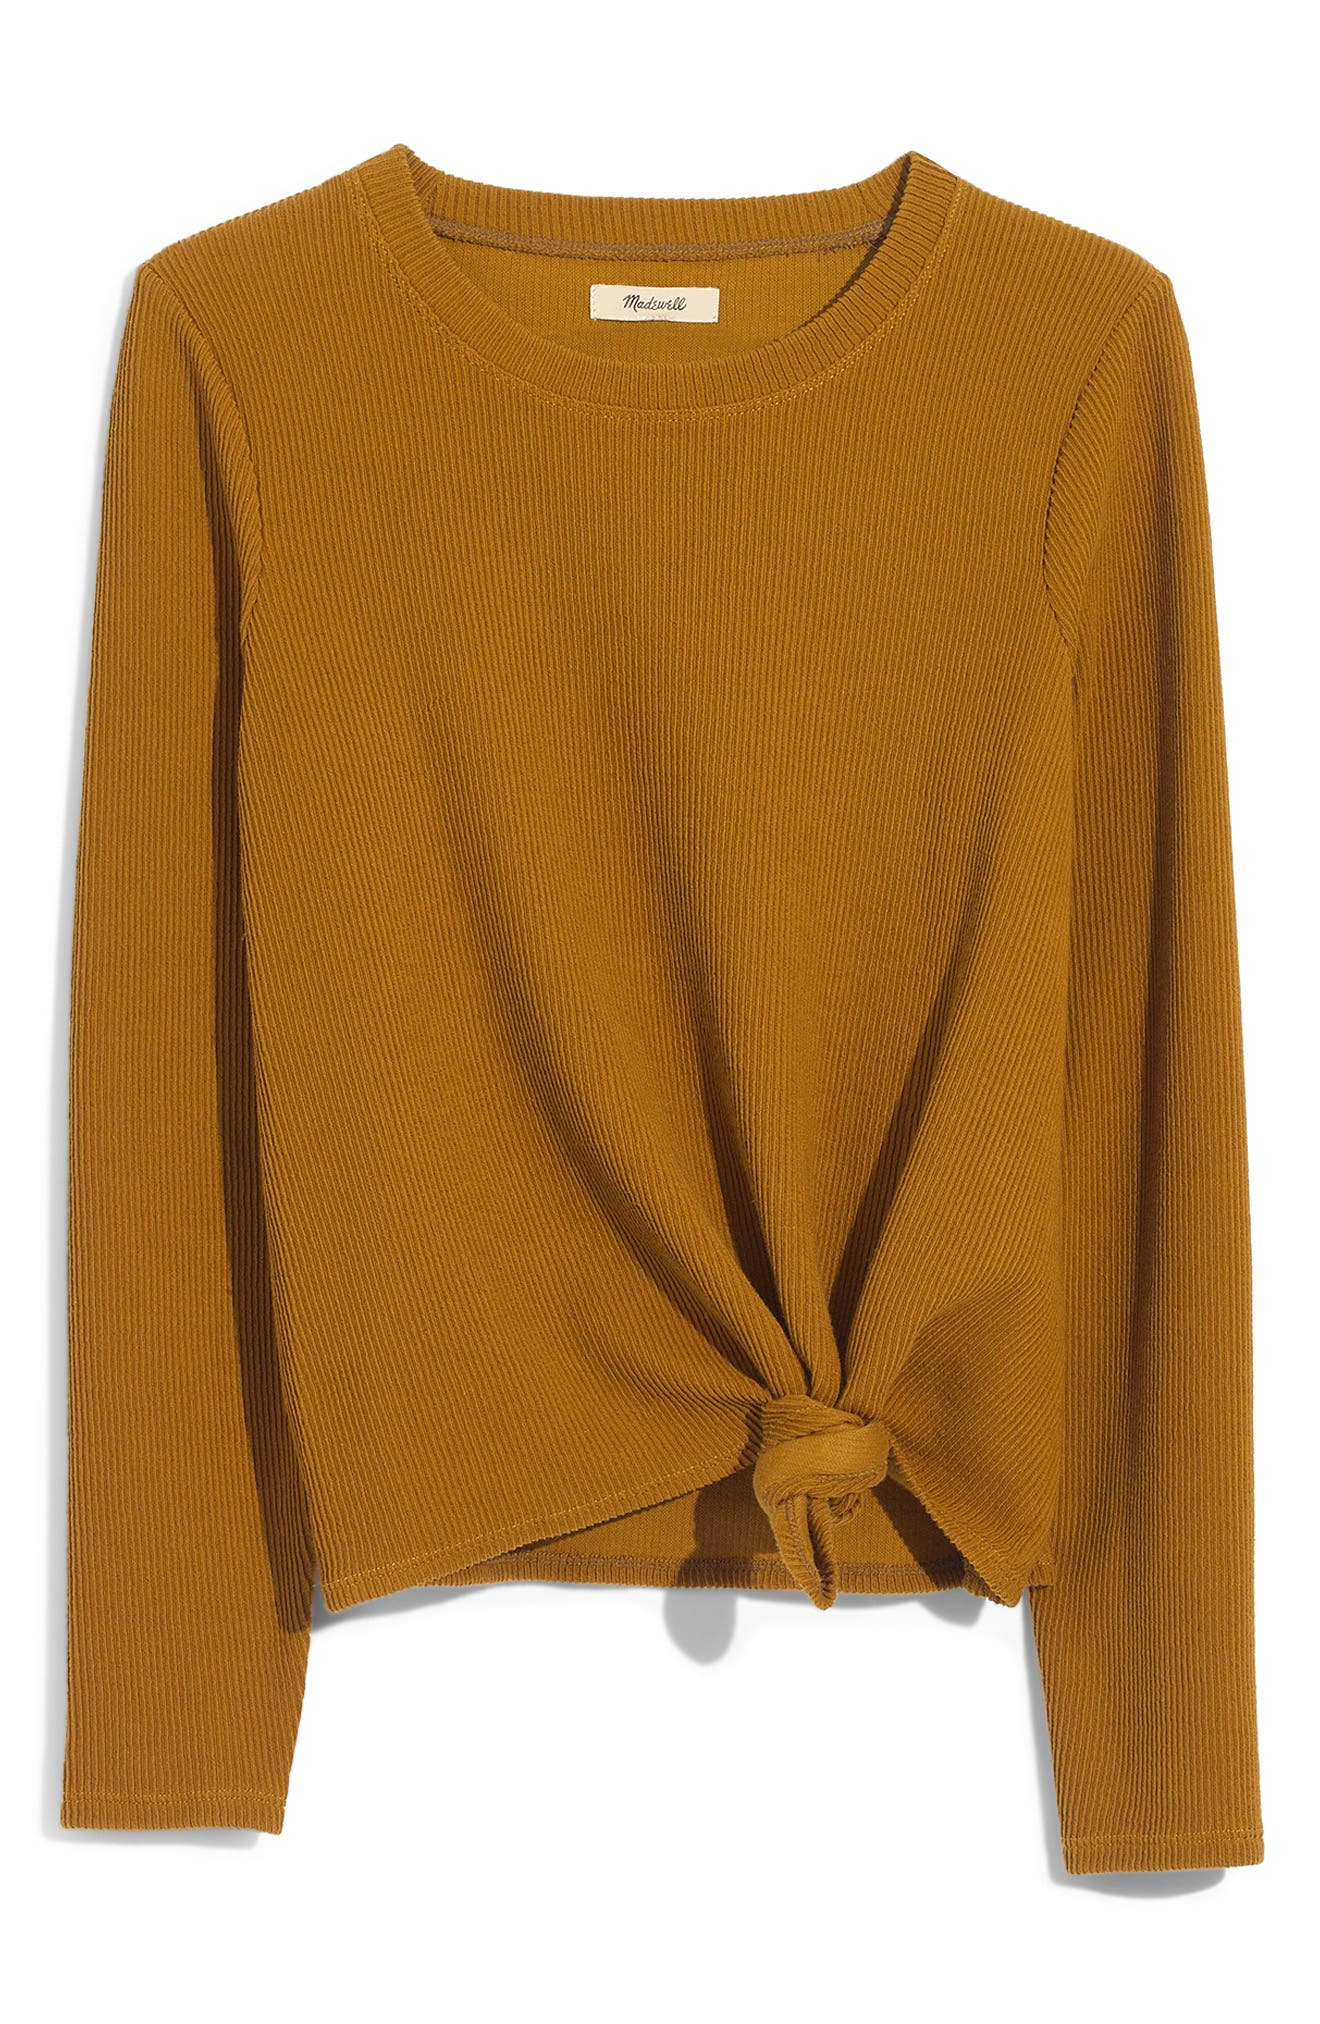 MADEWELL,                             Texture & Thread Front Knot Jacquard Top,                             Alternate thumbnail 5, color,                             EGYPTIAN GOLD